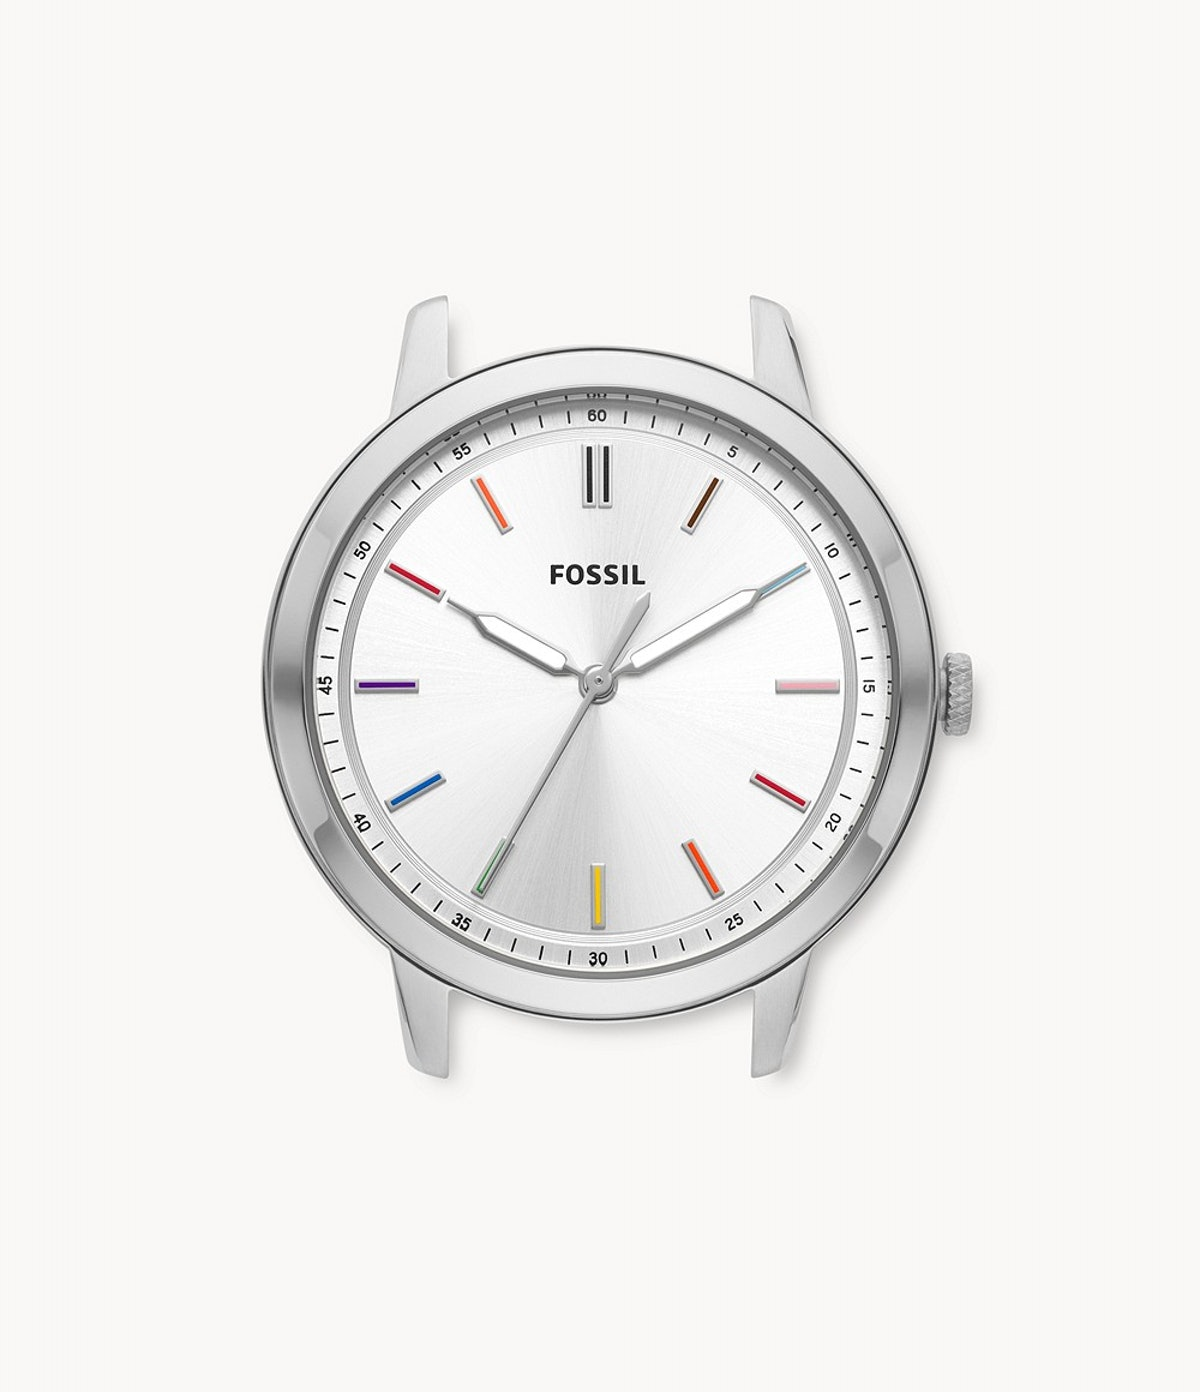 Limited Edition Pride Watch Case